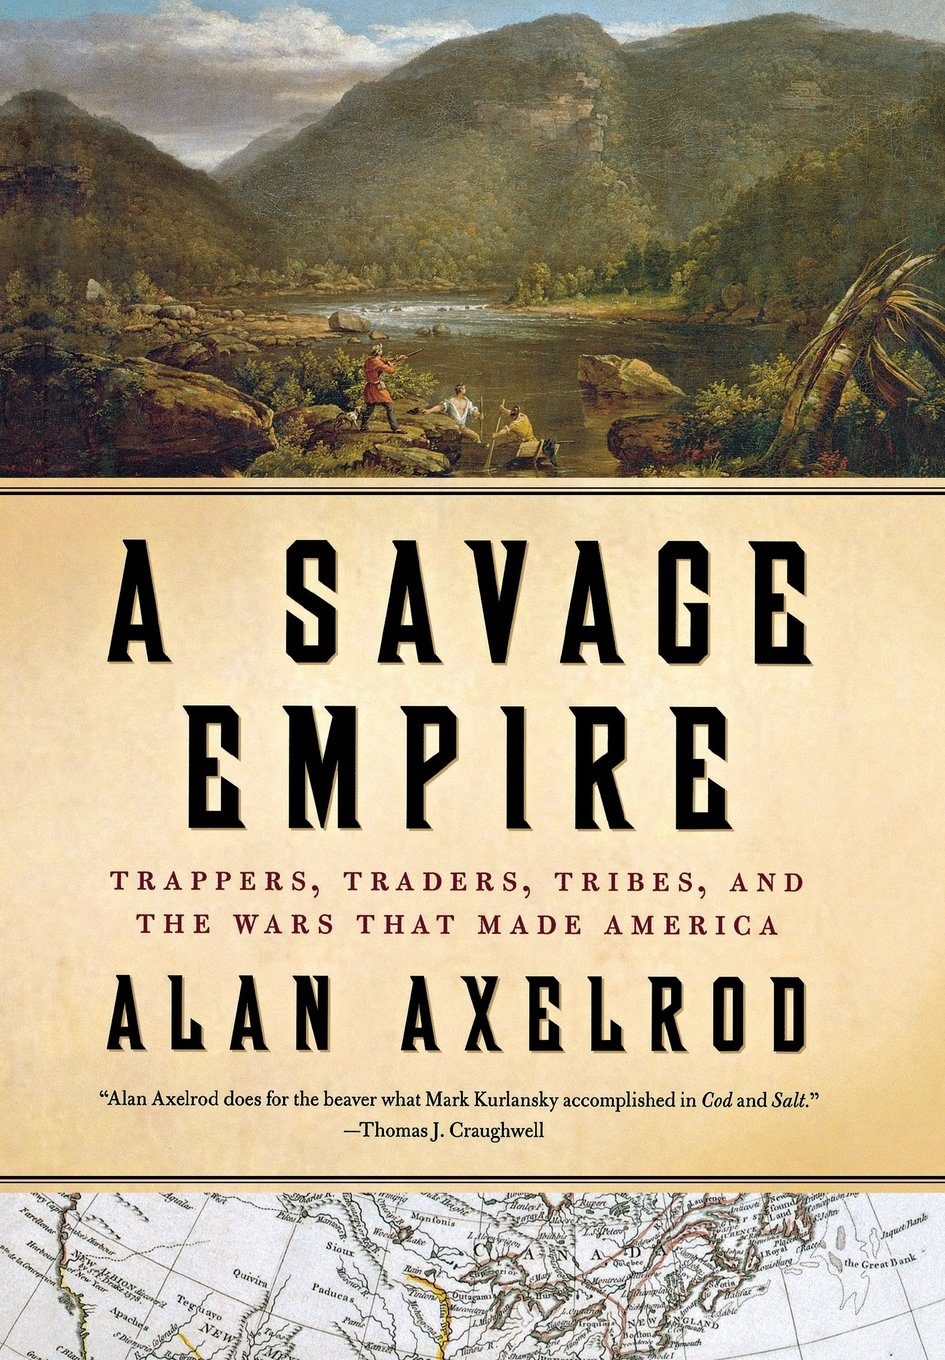 A Savage Empire: Trappers, Traders, Tribes, And The Wars That Made America:  Alan Axelrod: 9780312576561: Amazon: Books